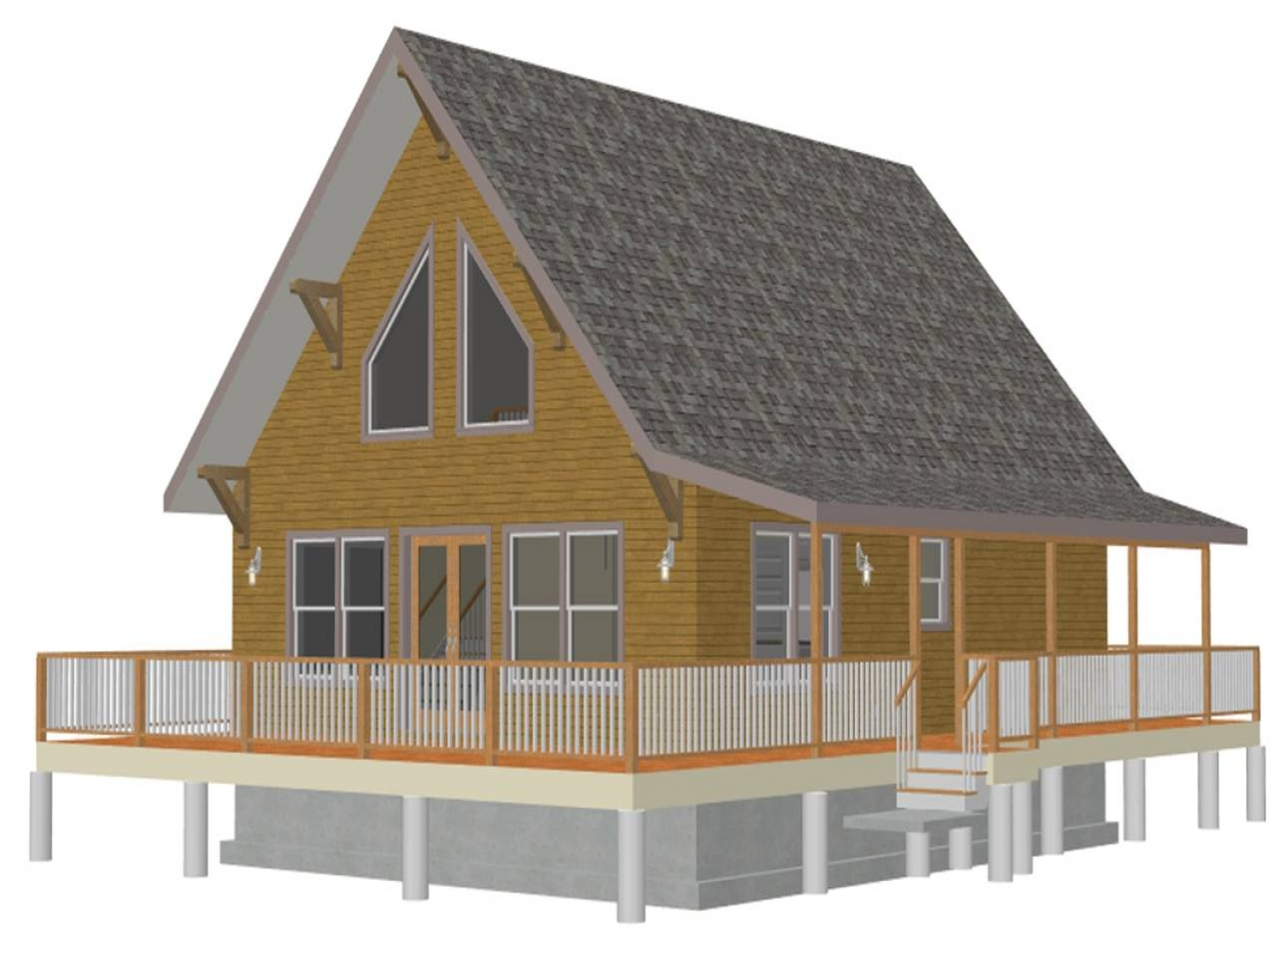 Small cabin house plans with loft small rustic house plans for Tiny cabin plans with loft